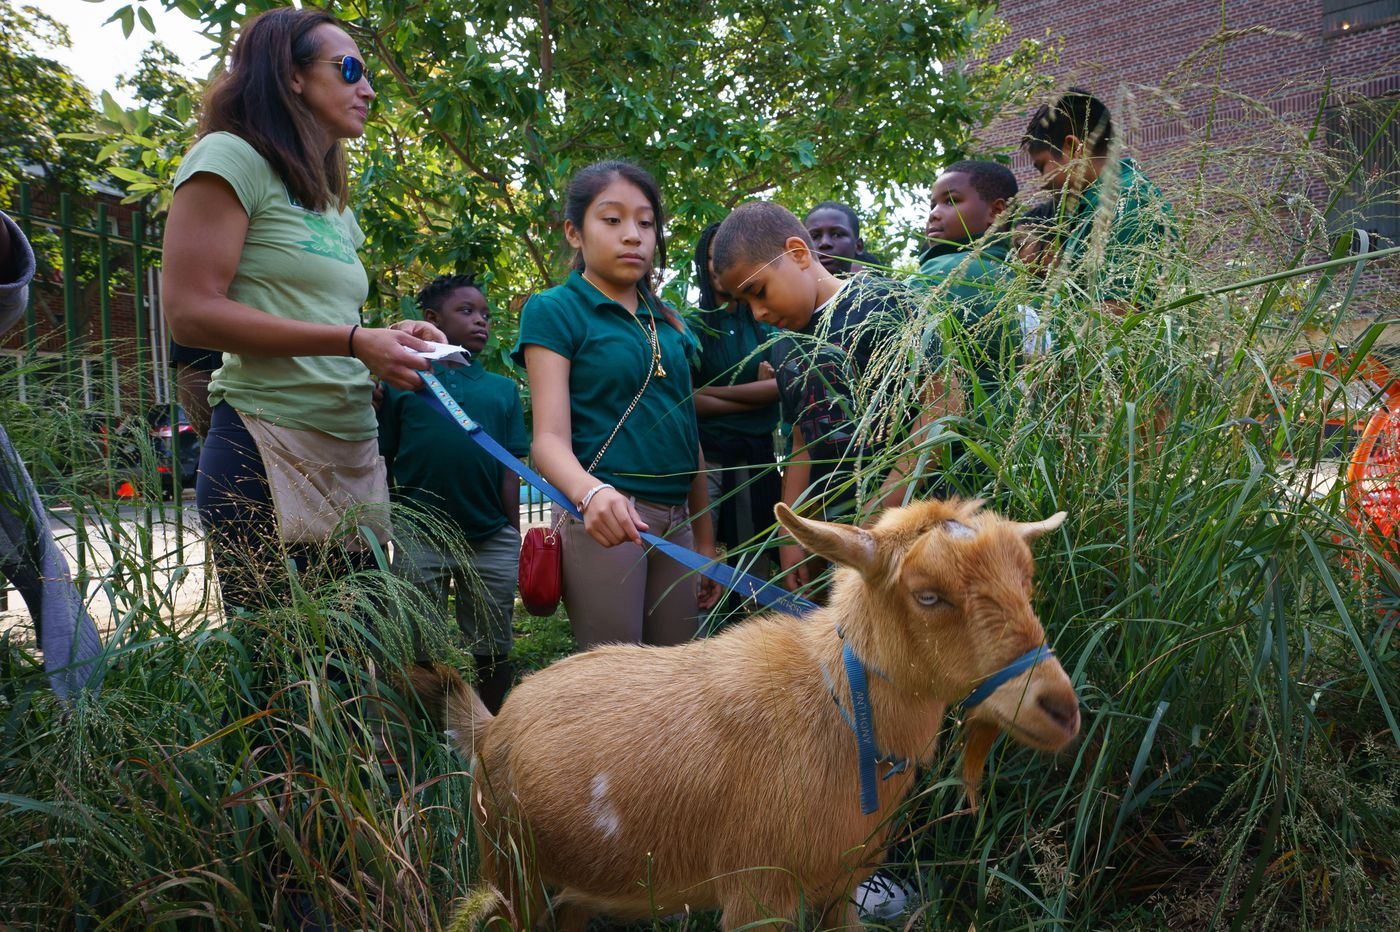 Kids, meet goats: Students receive unusual visitors at South Philly elementary